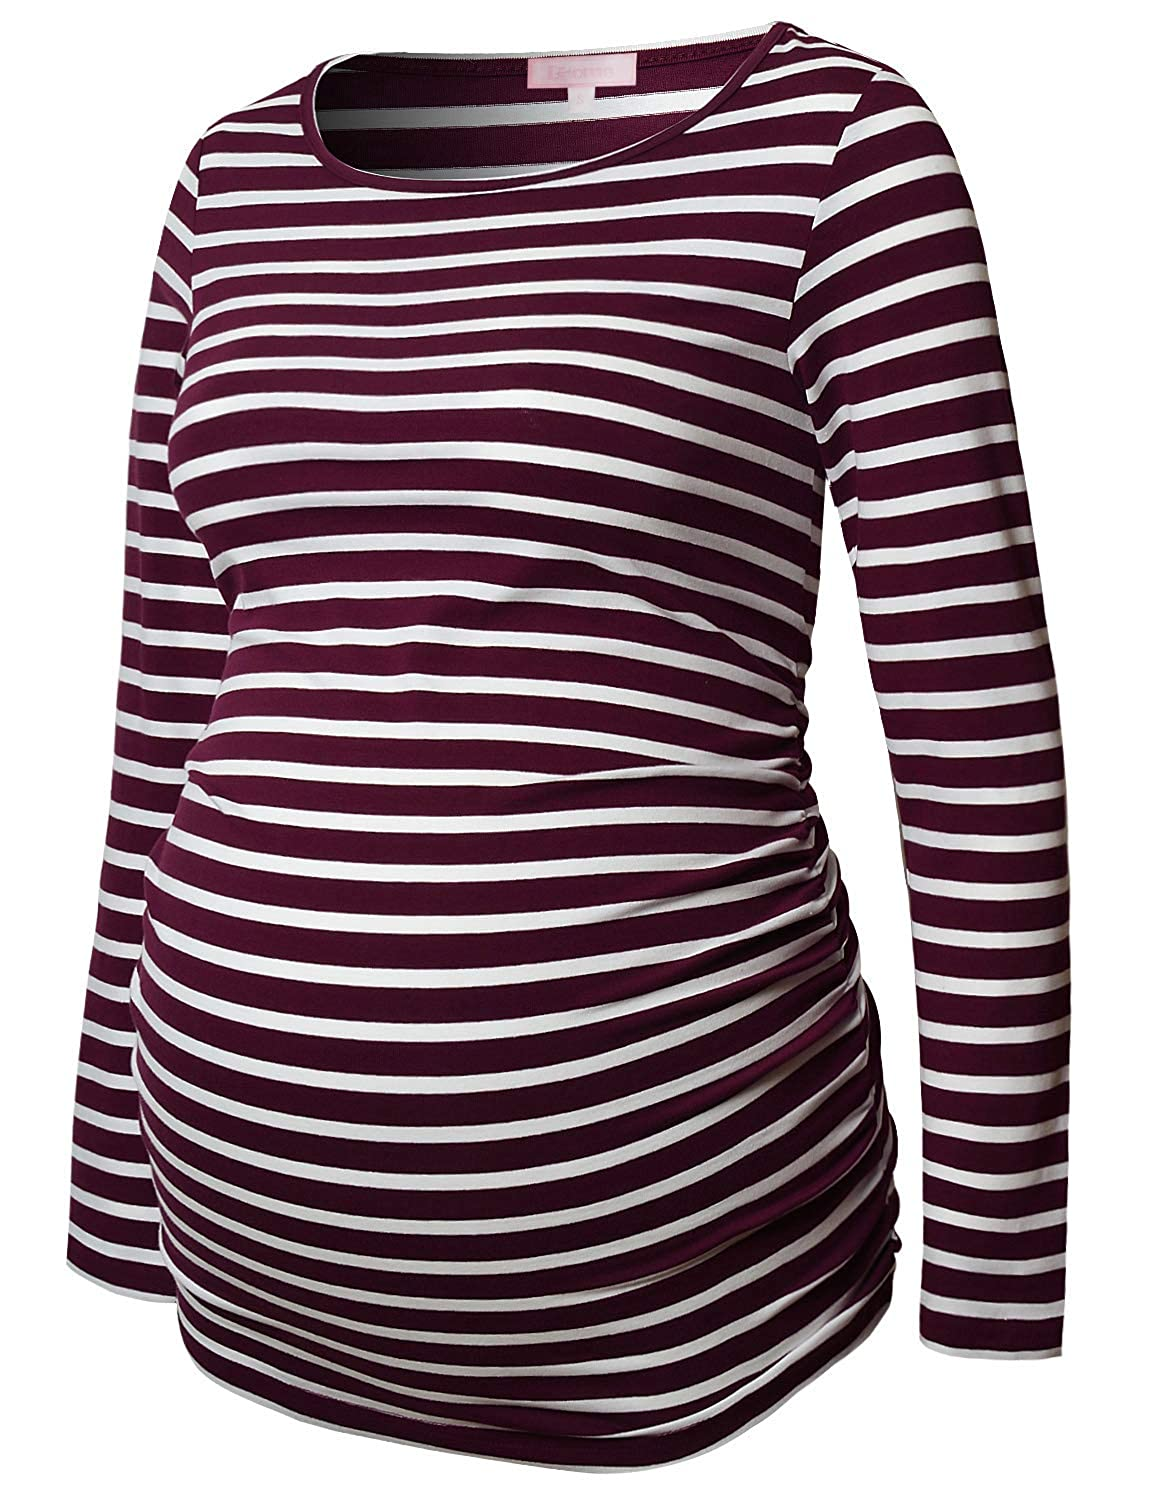 Burgundy and White Stripe Maternity Shirt Long Sleeve Basic Top Ruch Sides Bodycon Tshirt for Pregnant Women